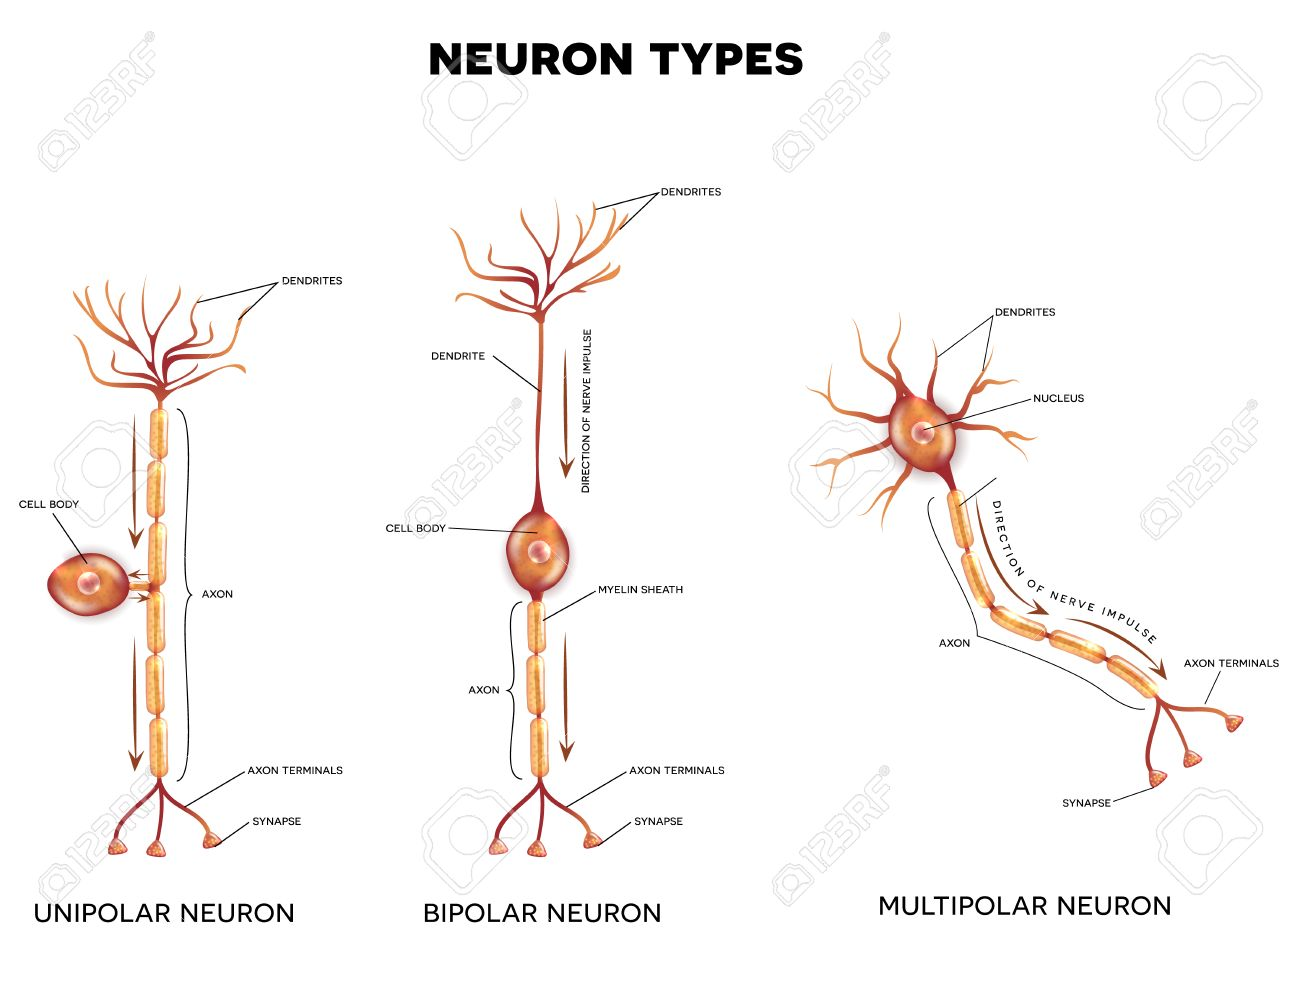 hight resolution of neuron types nerve cells that is the main part of the nervous system stock